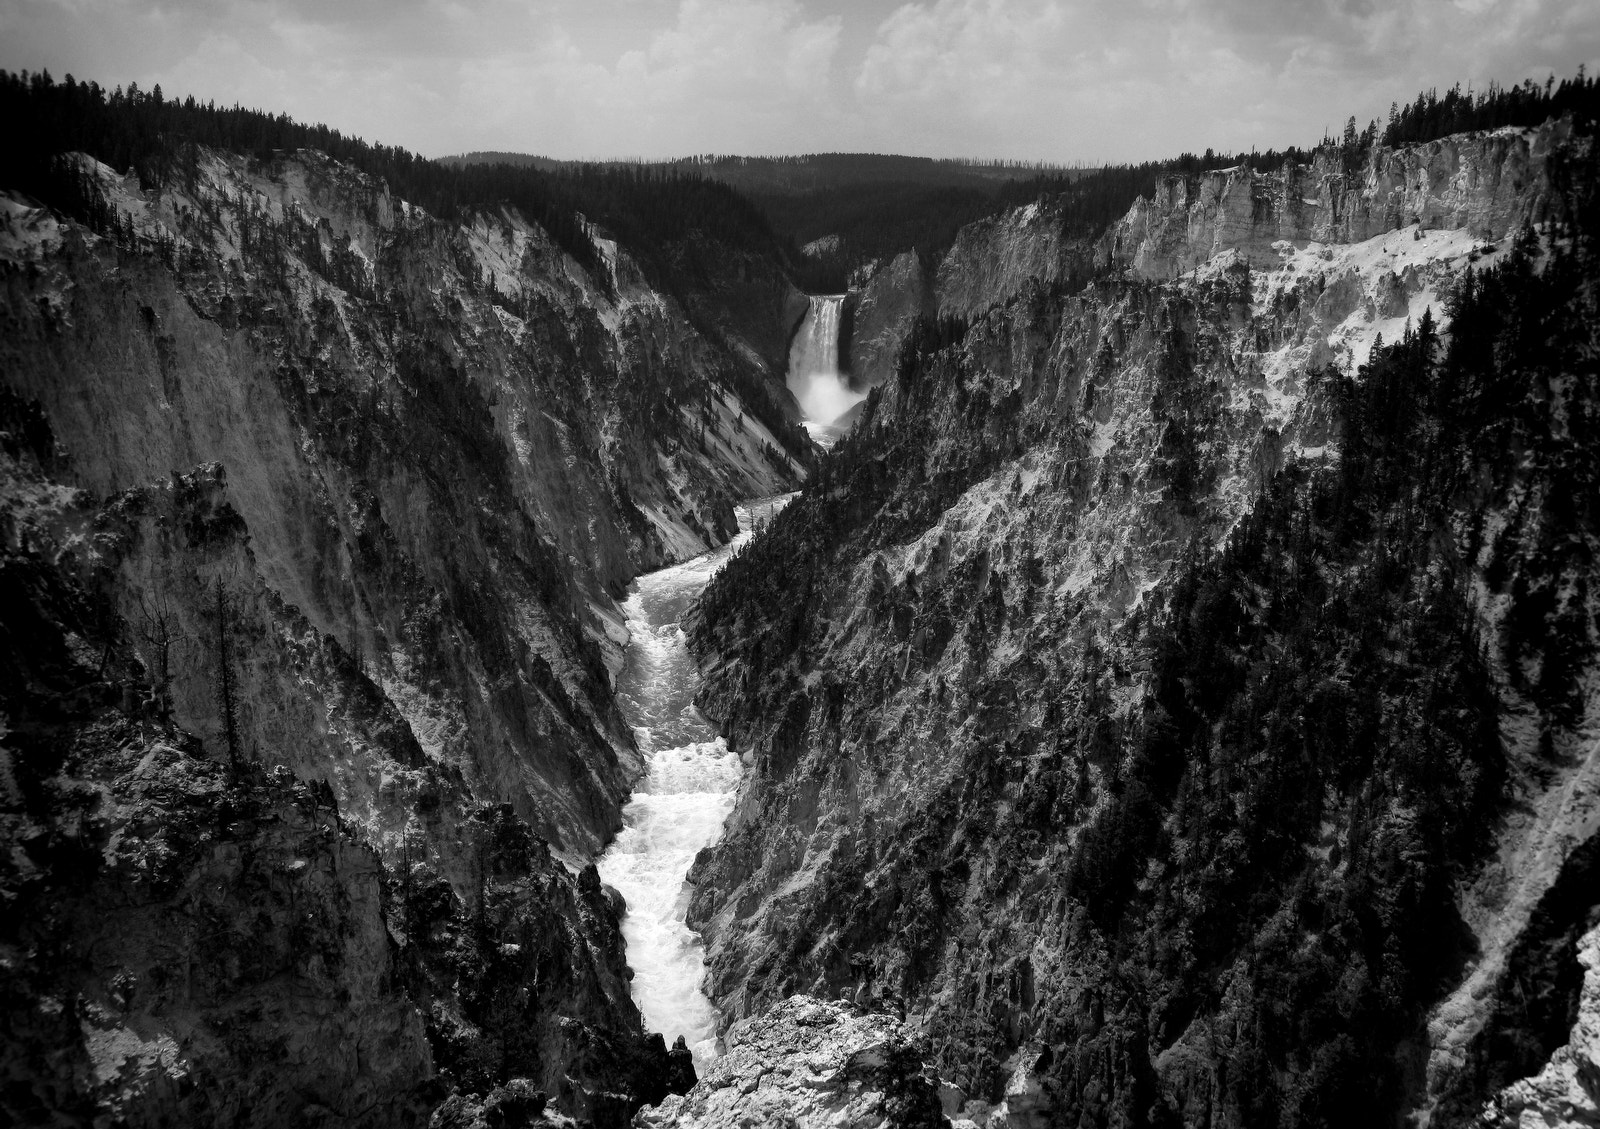 Photograph Lower Falls of the Yellowstone by Clinton Lewis on 500px